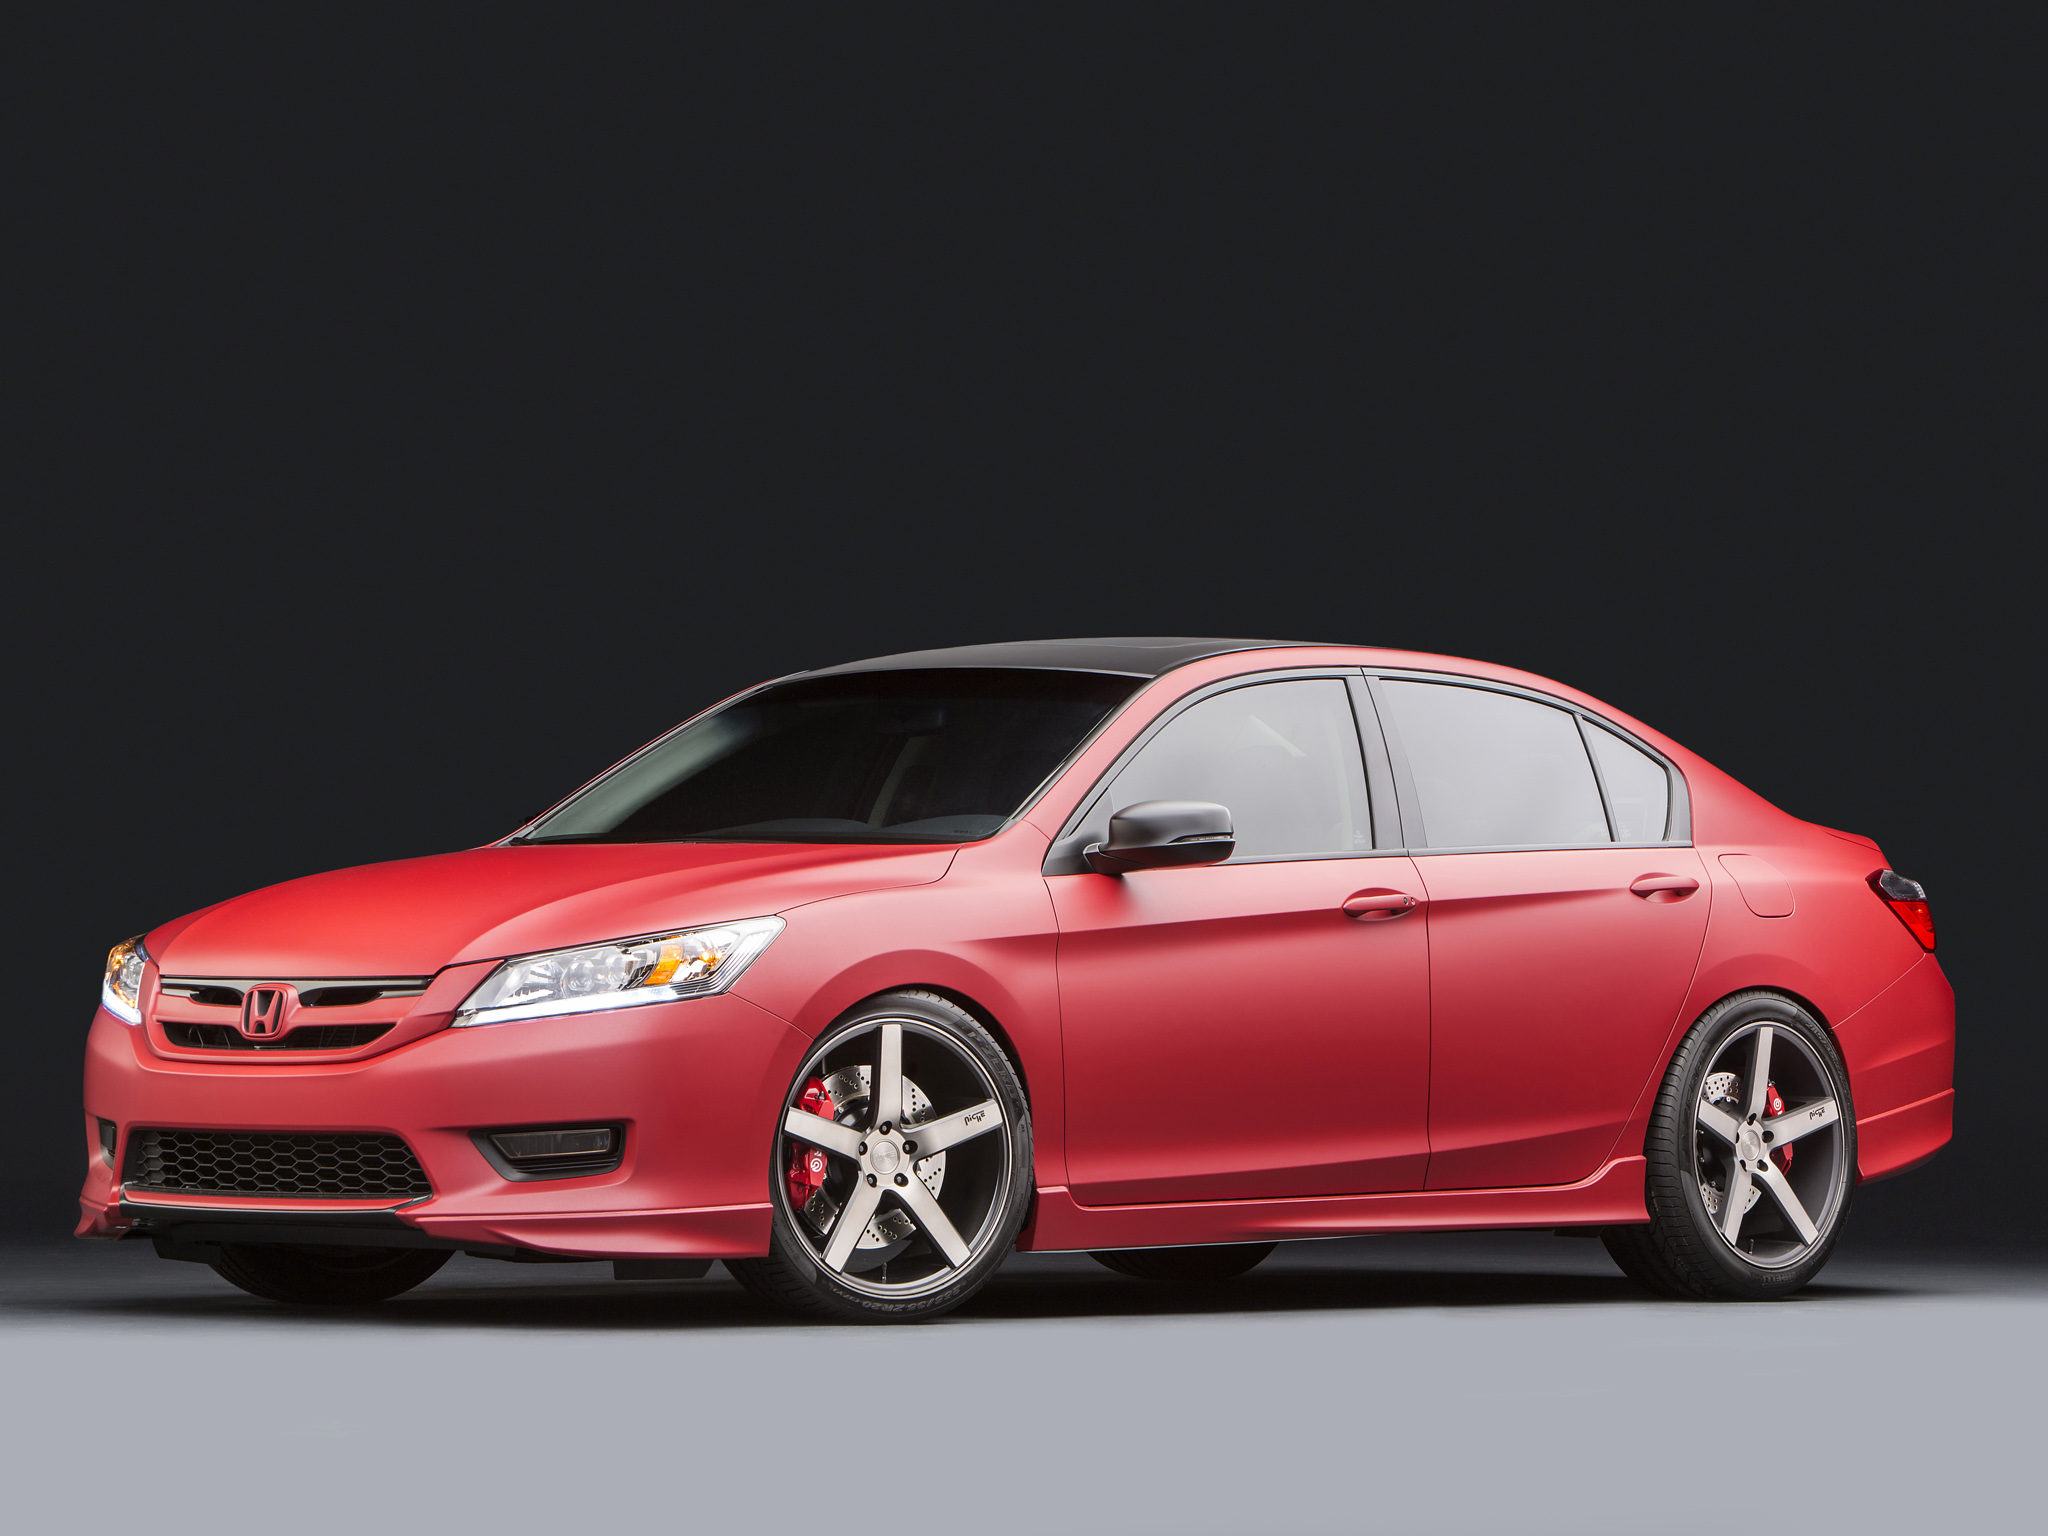 2013 honda accord by mad industries tuning h wallpaper. Black Bedroom Furniture Sets. Home Design Ideas